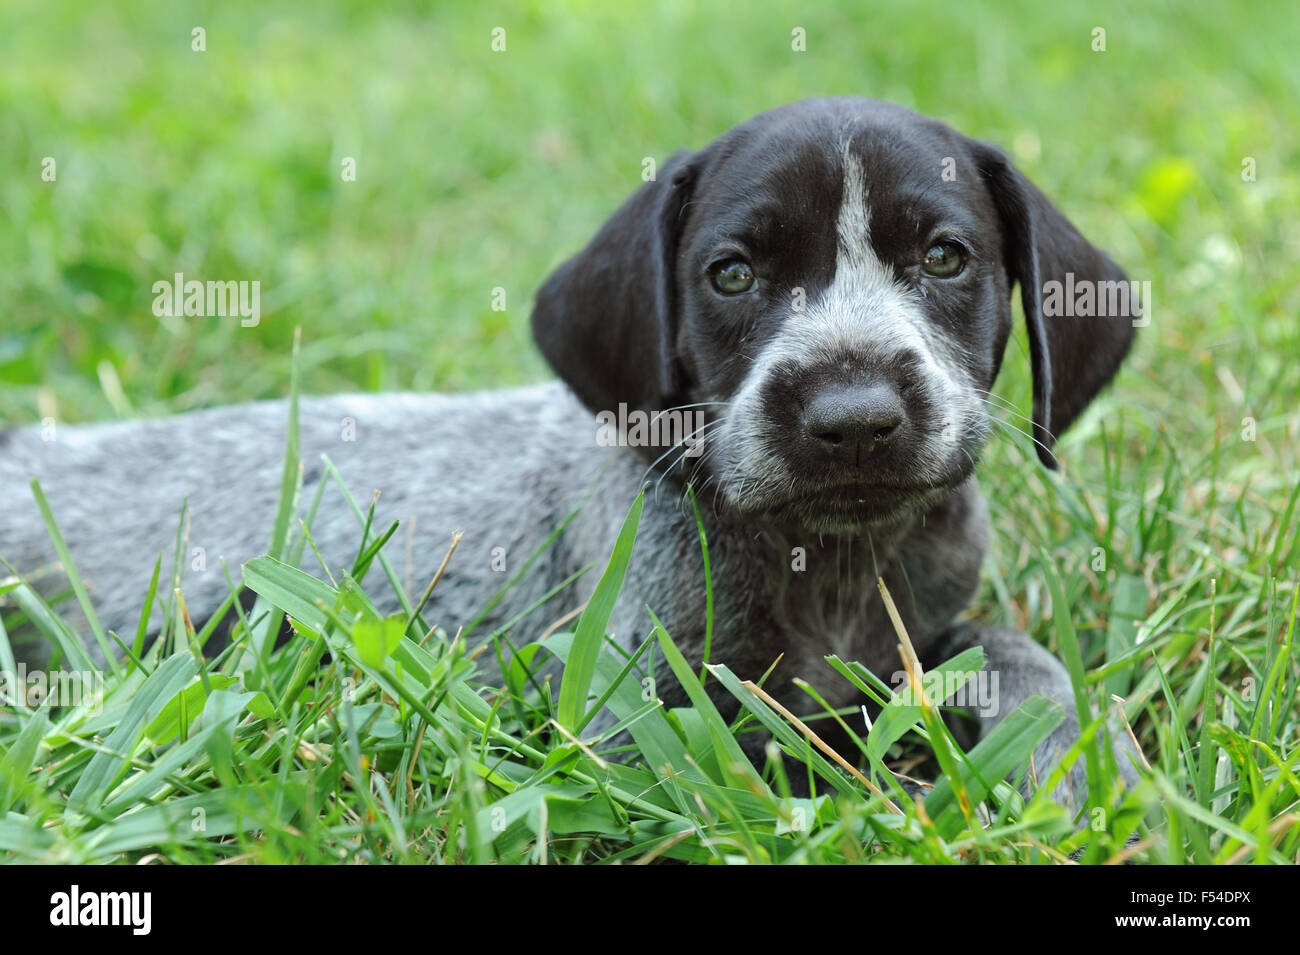 31cce37e1fe Short Haired Stock Photos & Short Haired Stock Images - Alamy